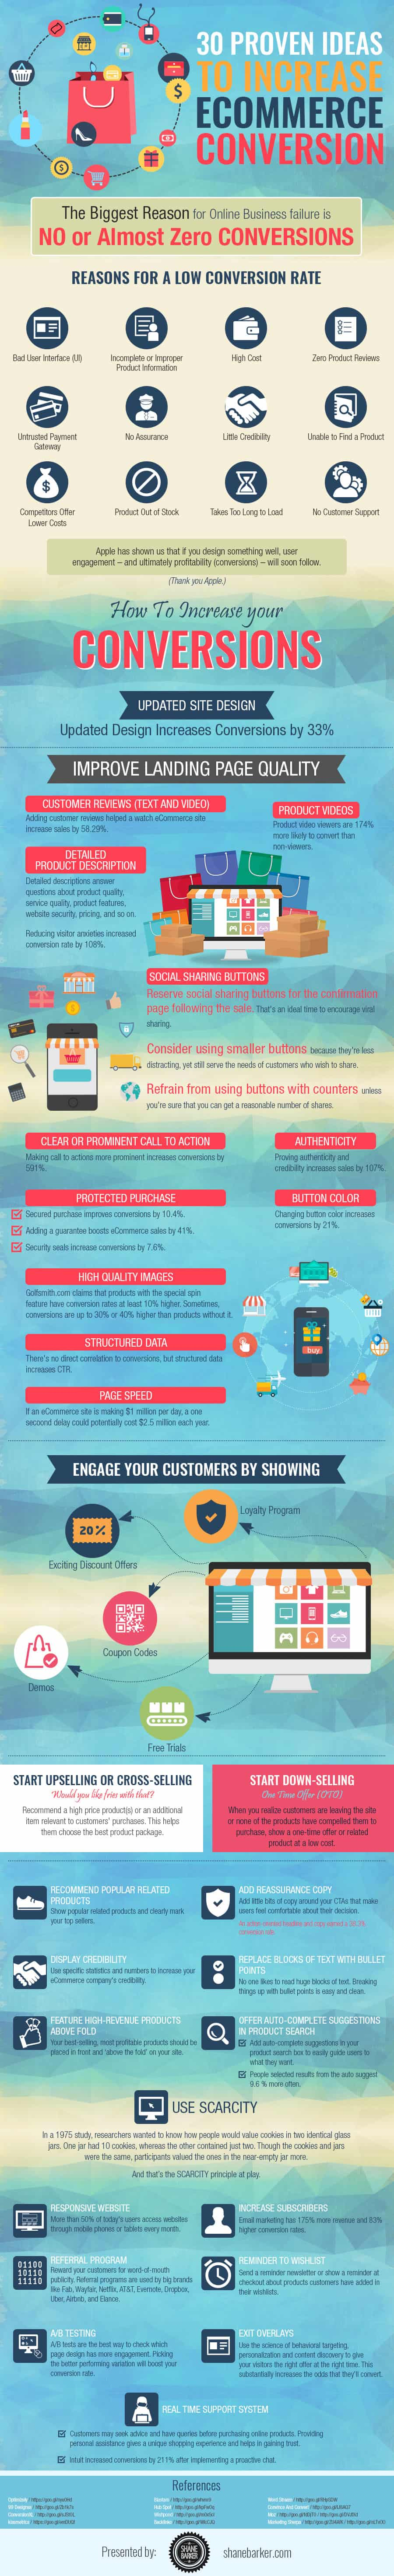 30 Proven Ideas To Increase eCommerce Conversion